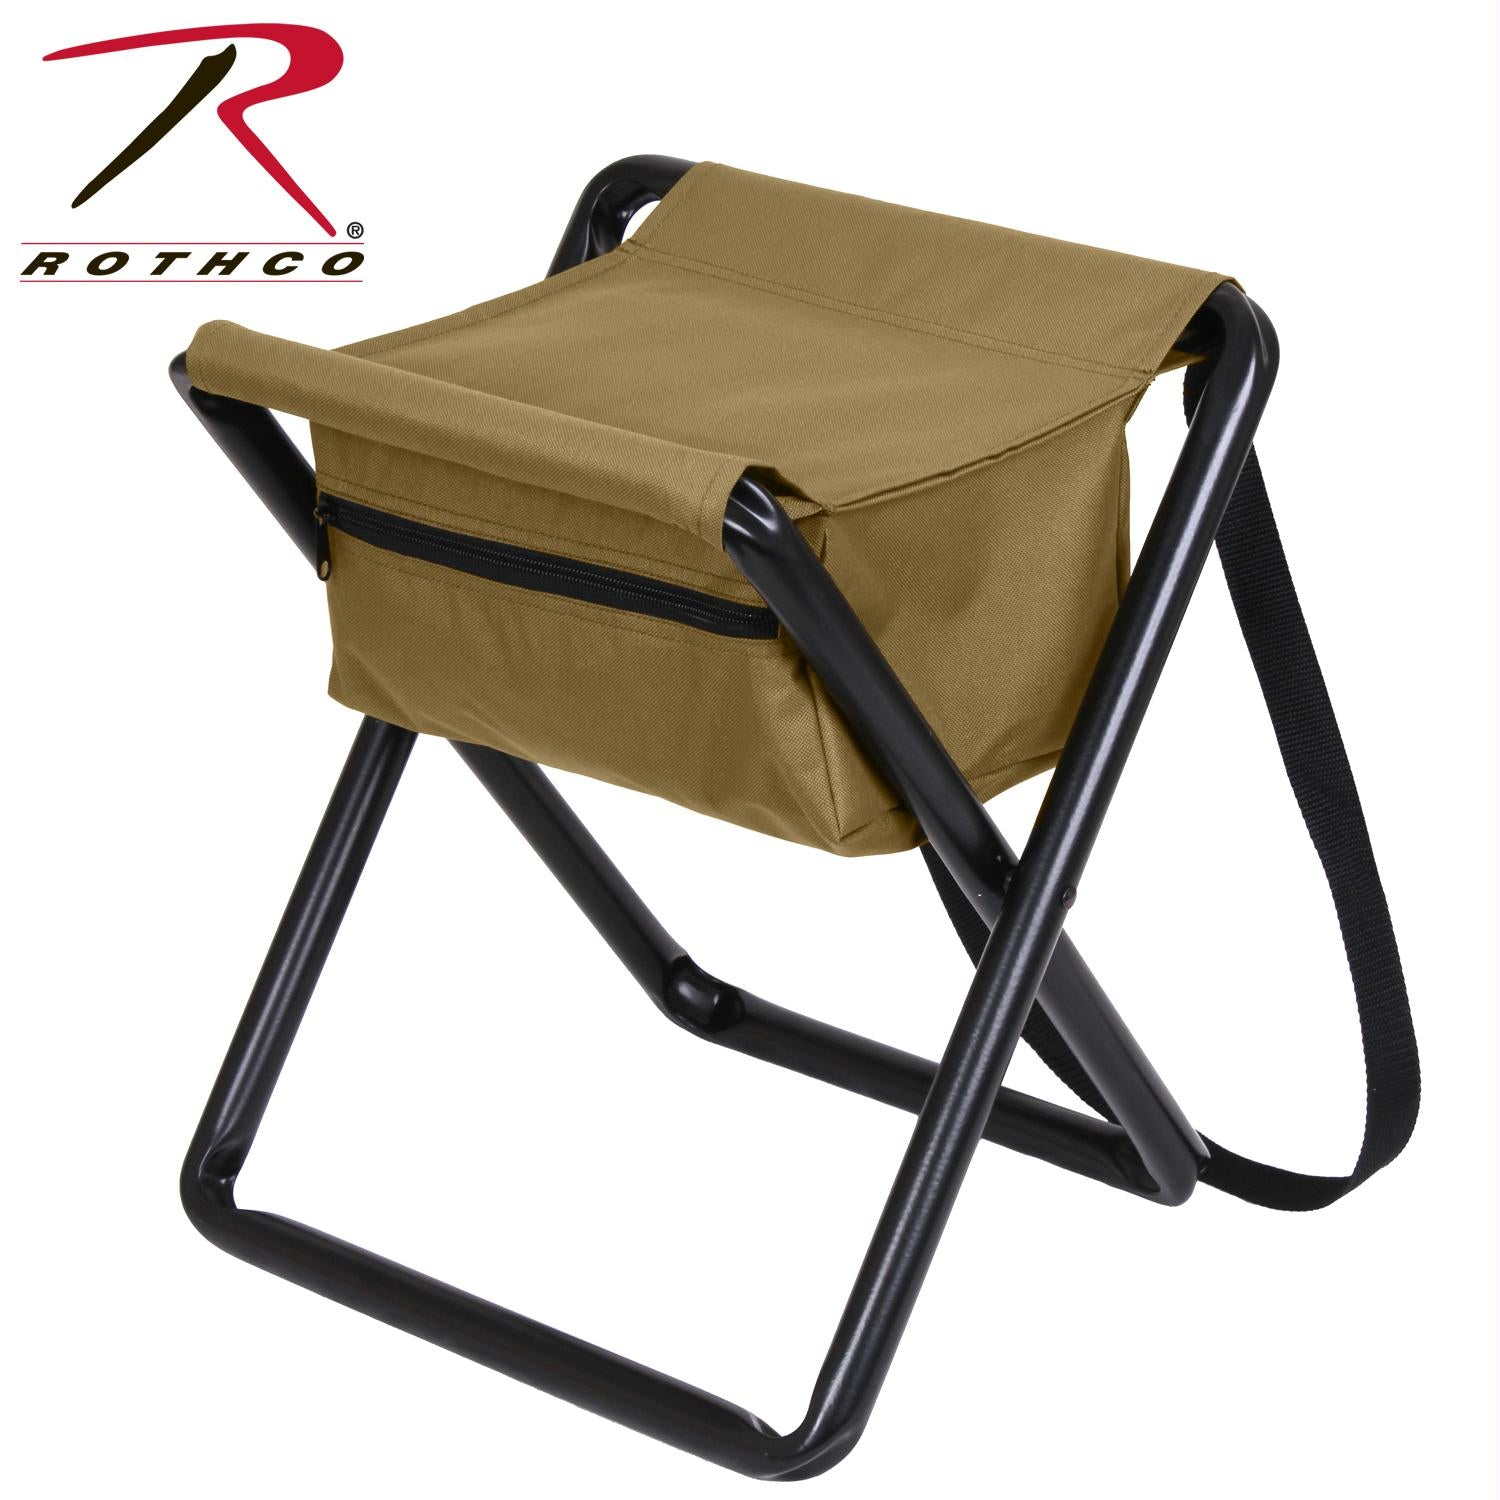 Rothco Deluxe Stool With Pouch - Coyote Brown